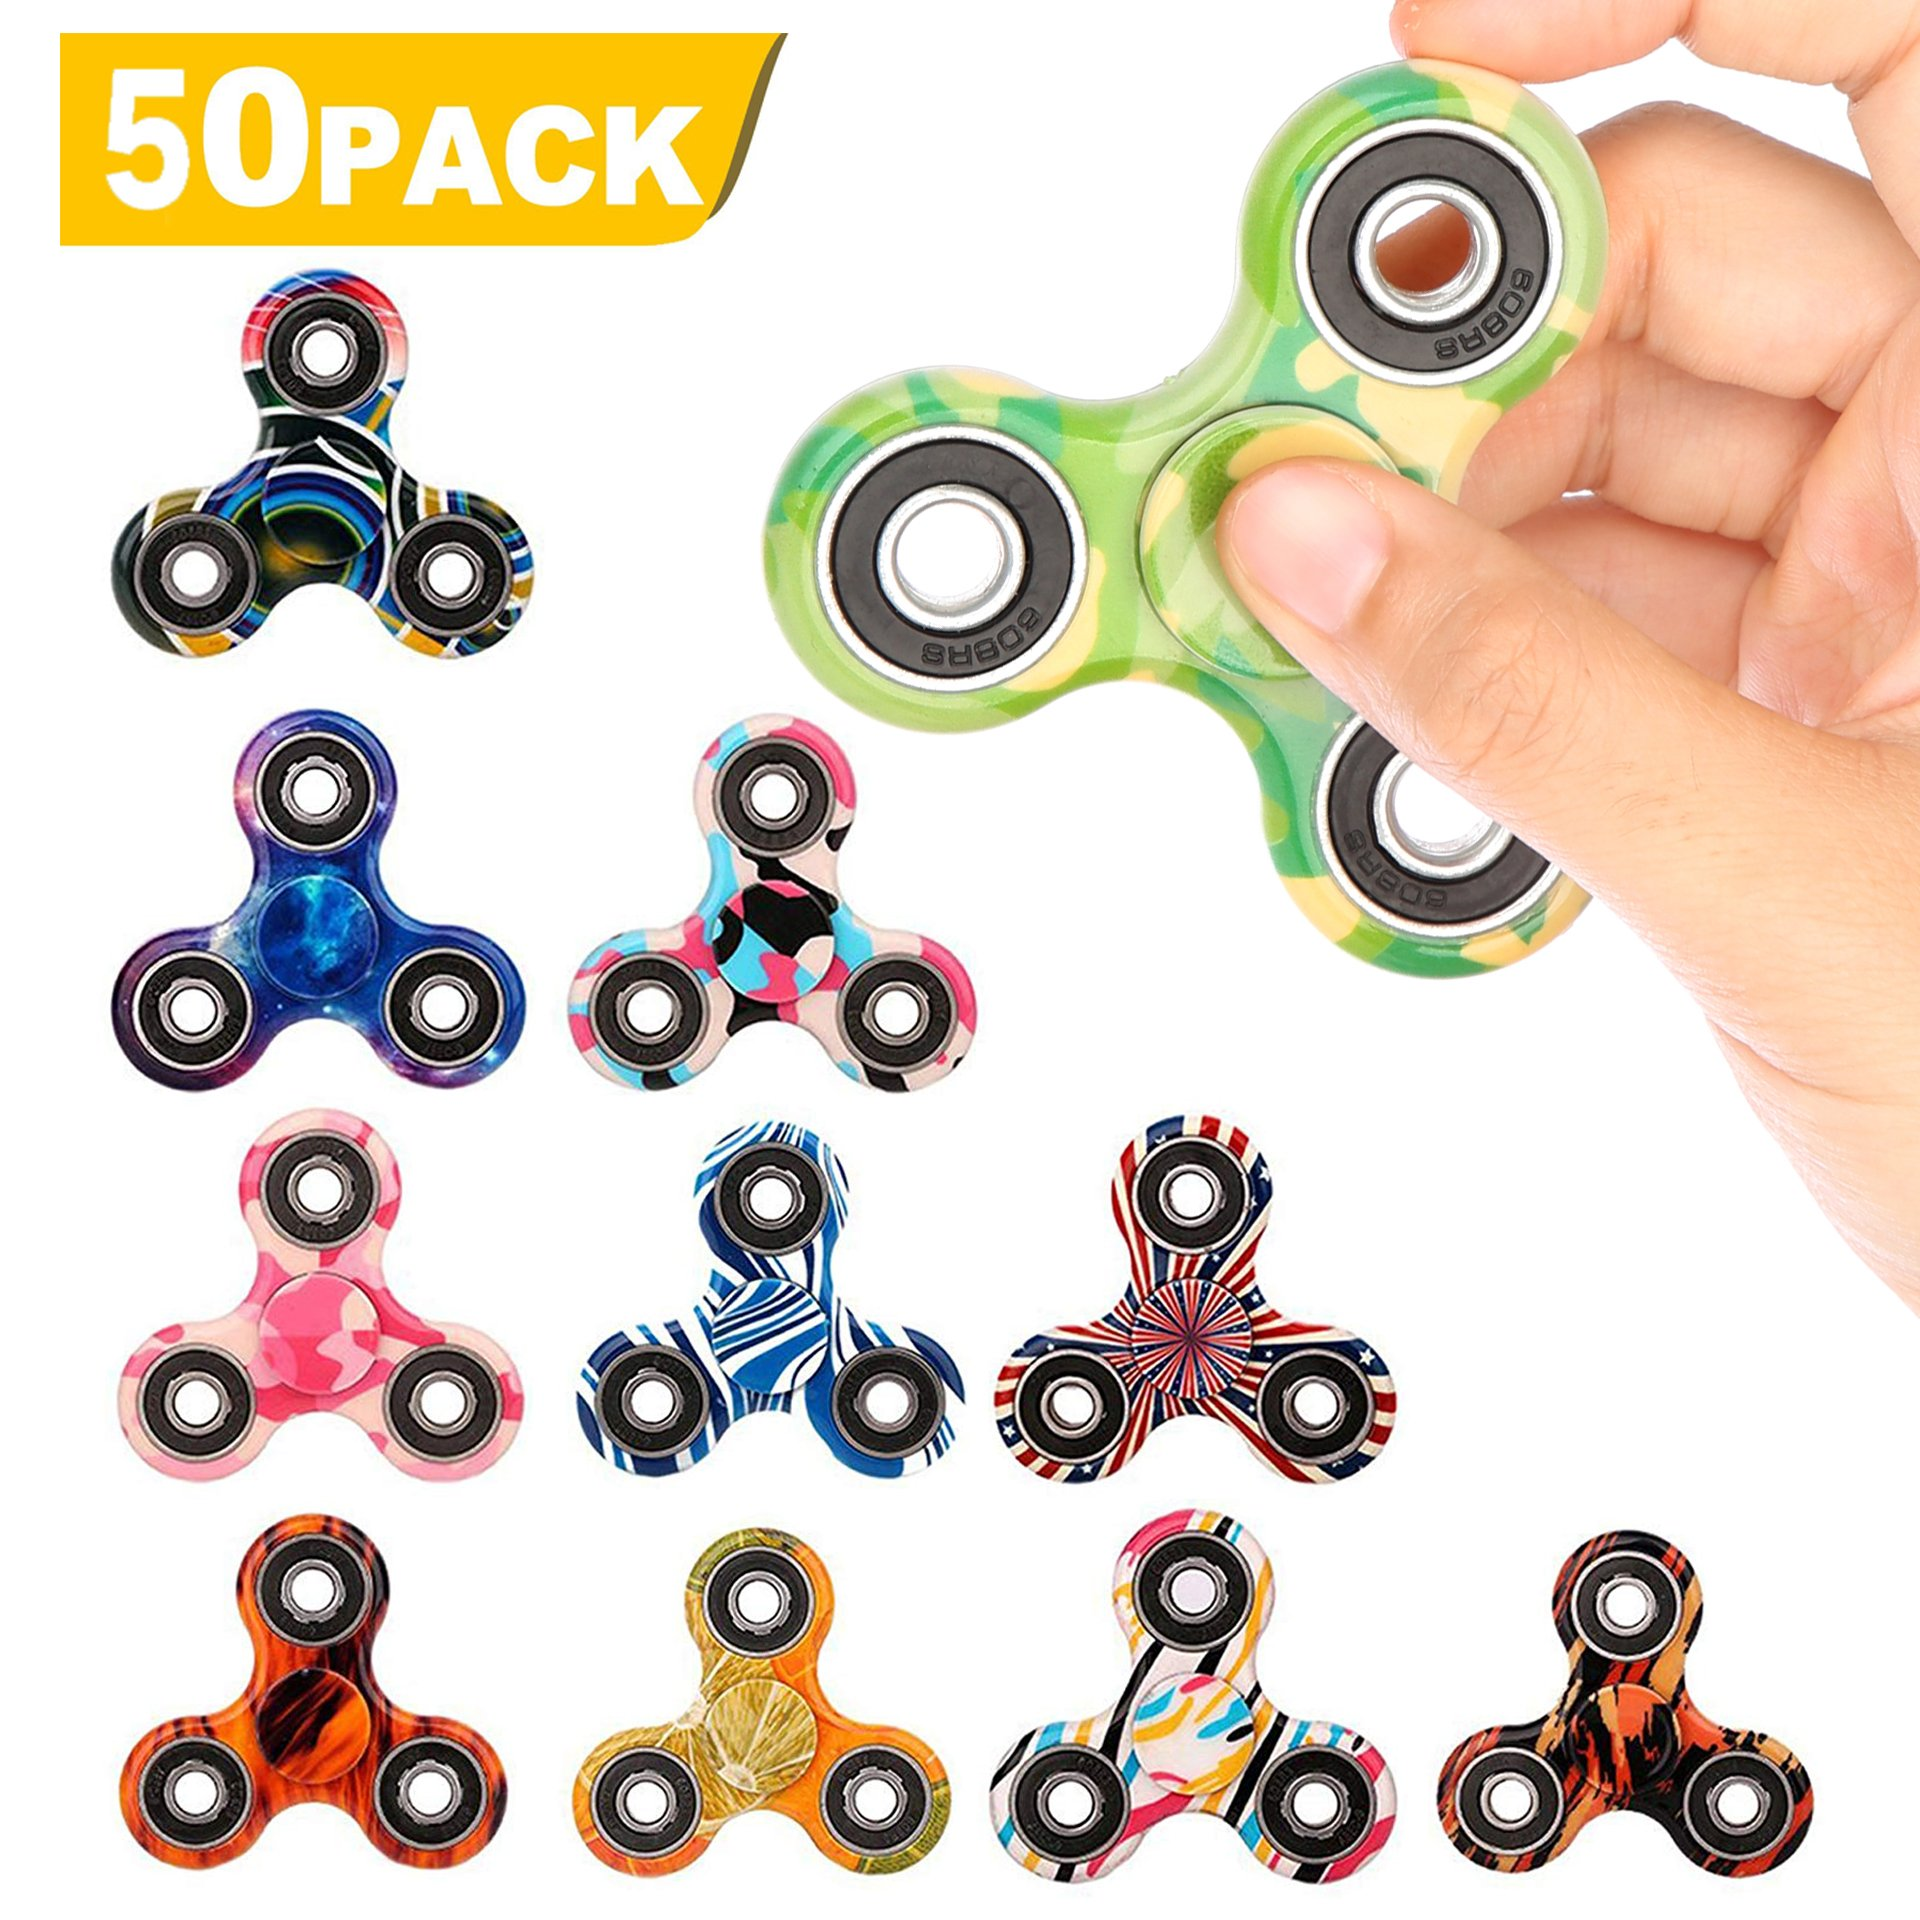 SCIONE 50 Pack Fidget Spinner ADHD Anxiety Stress Relief Toys for Adults Kids Autism Fidgets Best EDC Hand Spinners Bearing Trispinner Finger Toy Focus Fidgeting Restless Tri-Spinner by SCIONE